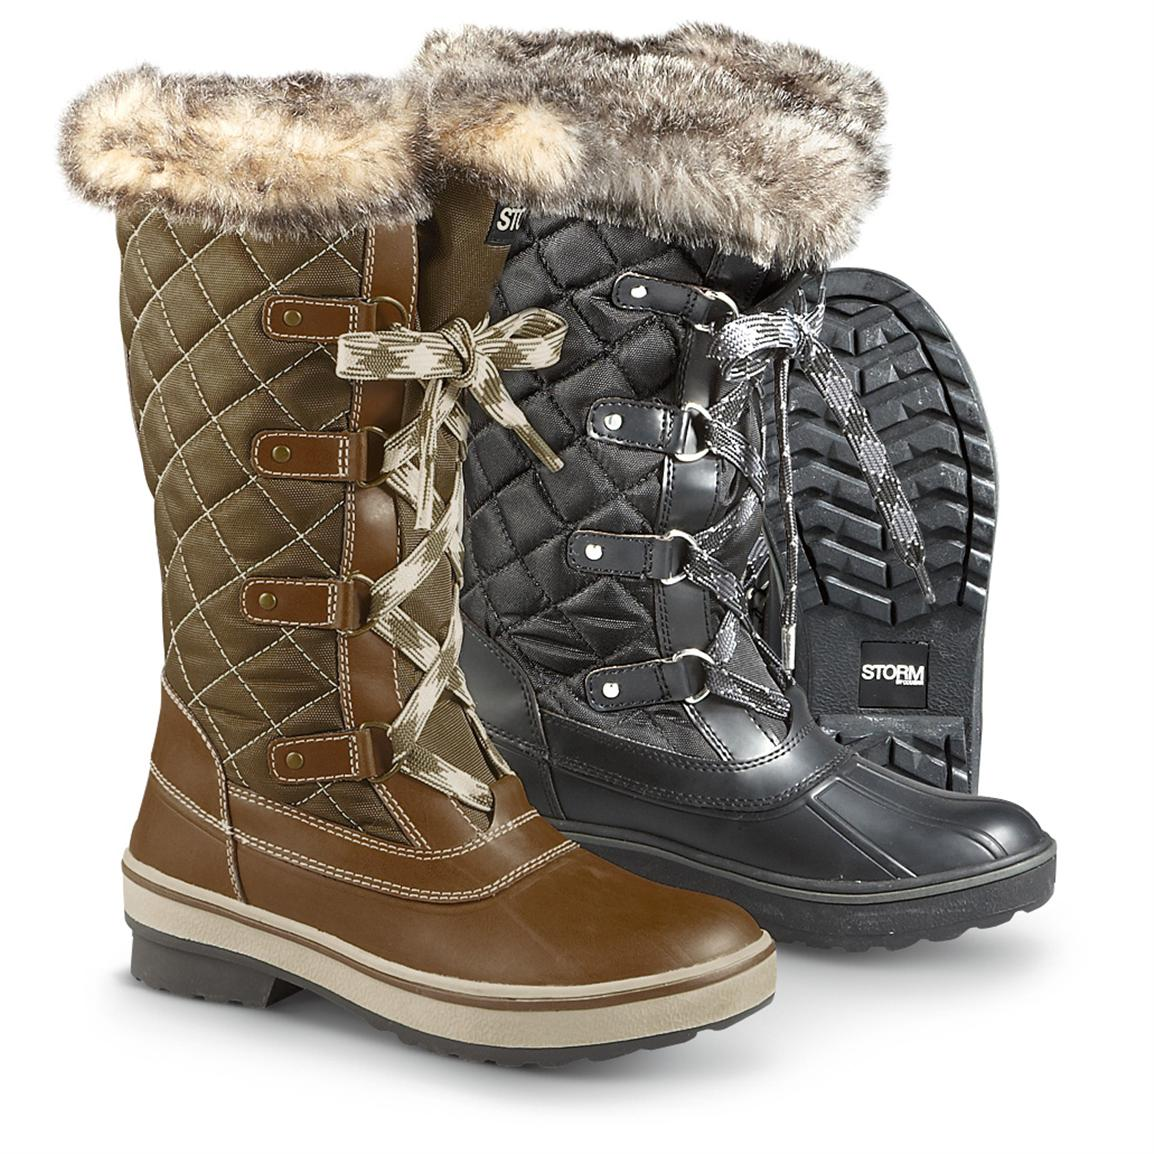 Winter Snow Boots Women 0pEx7w81